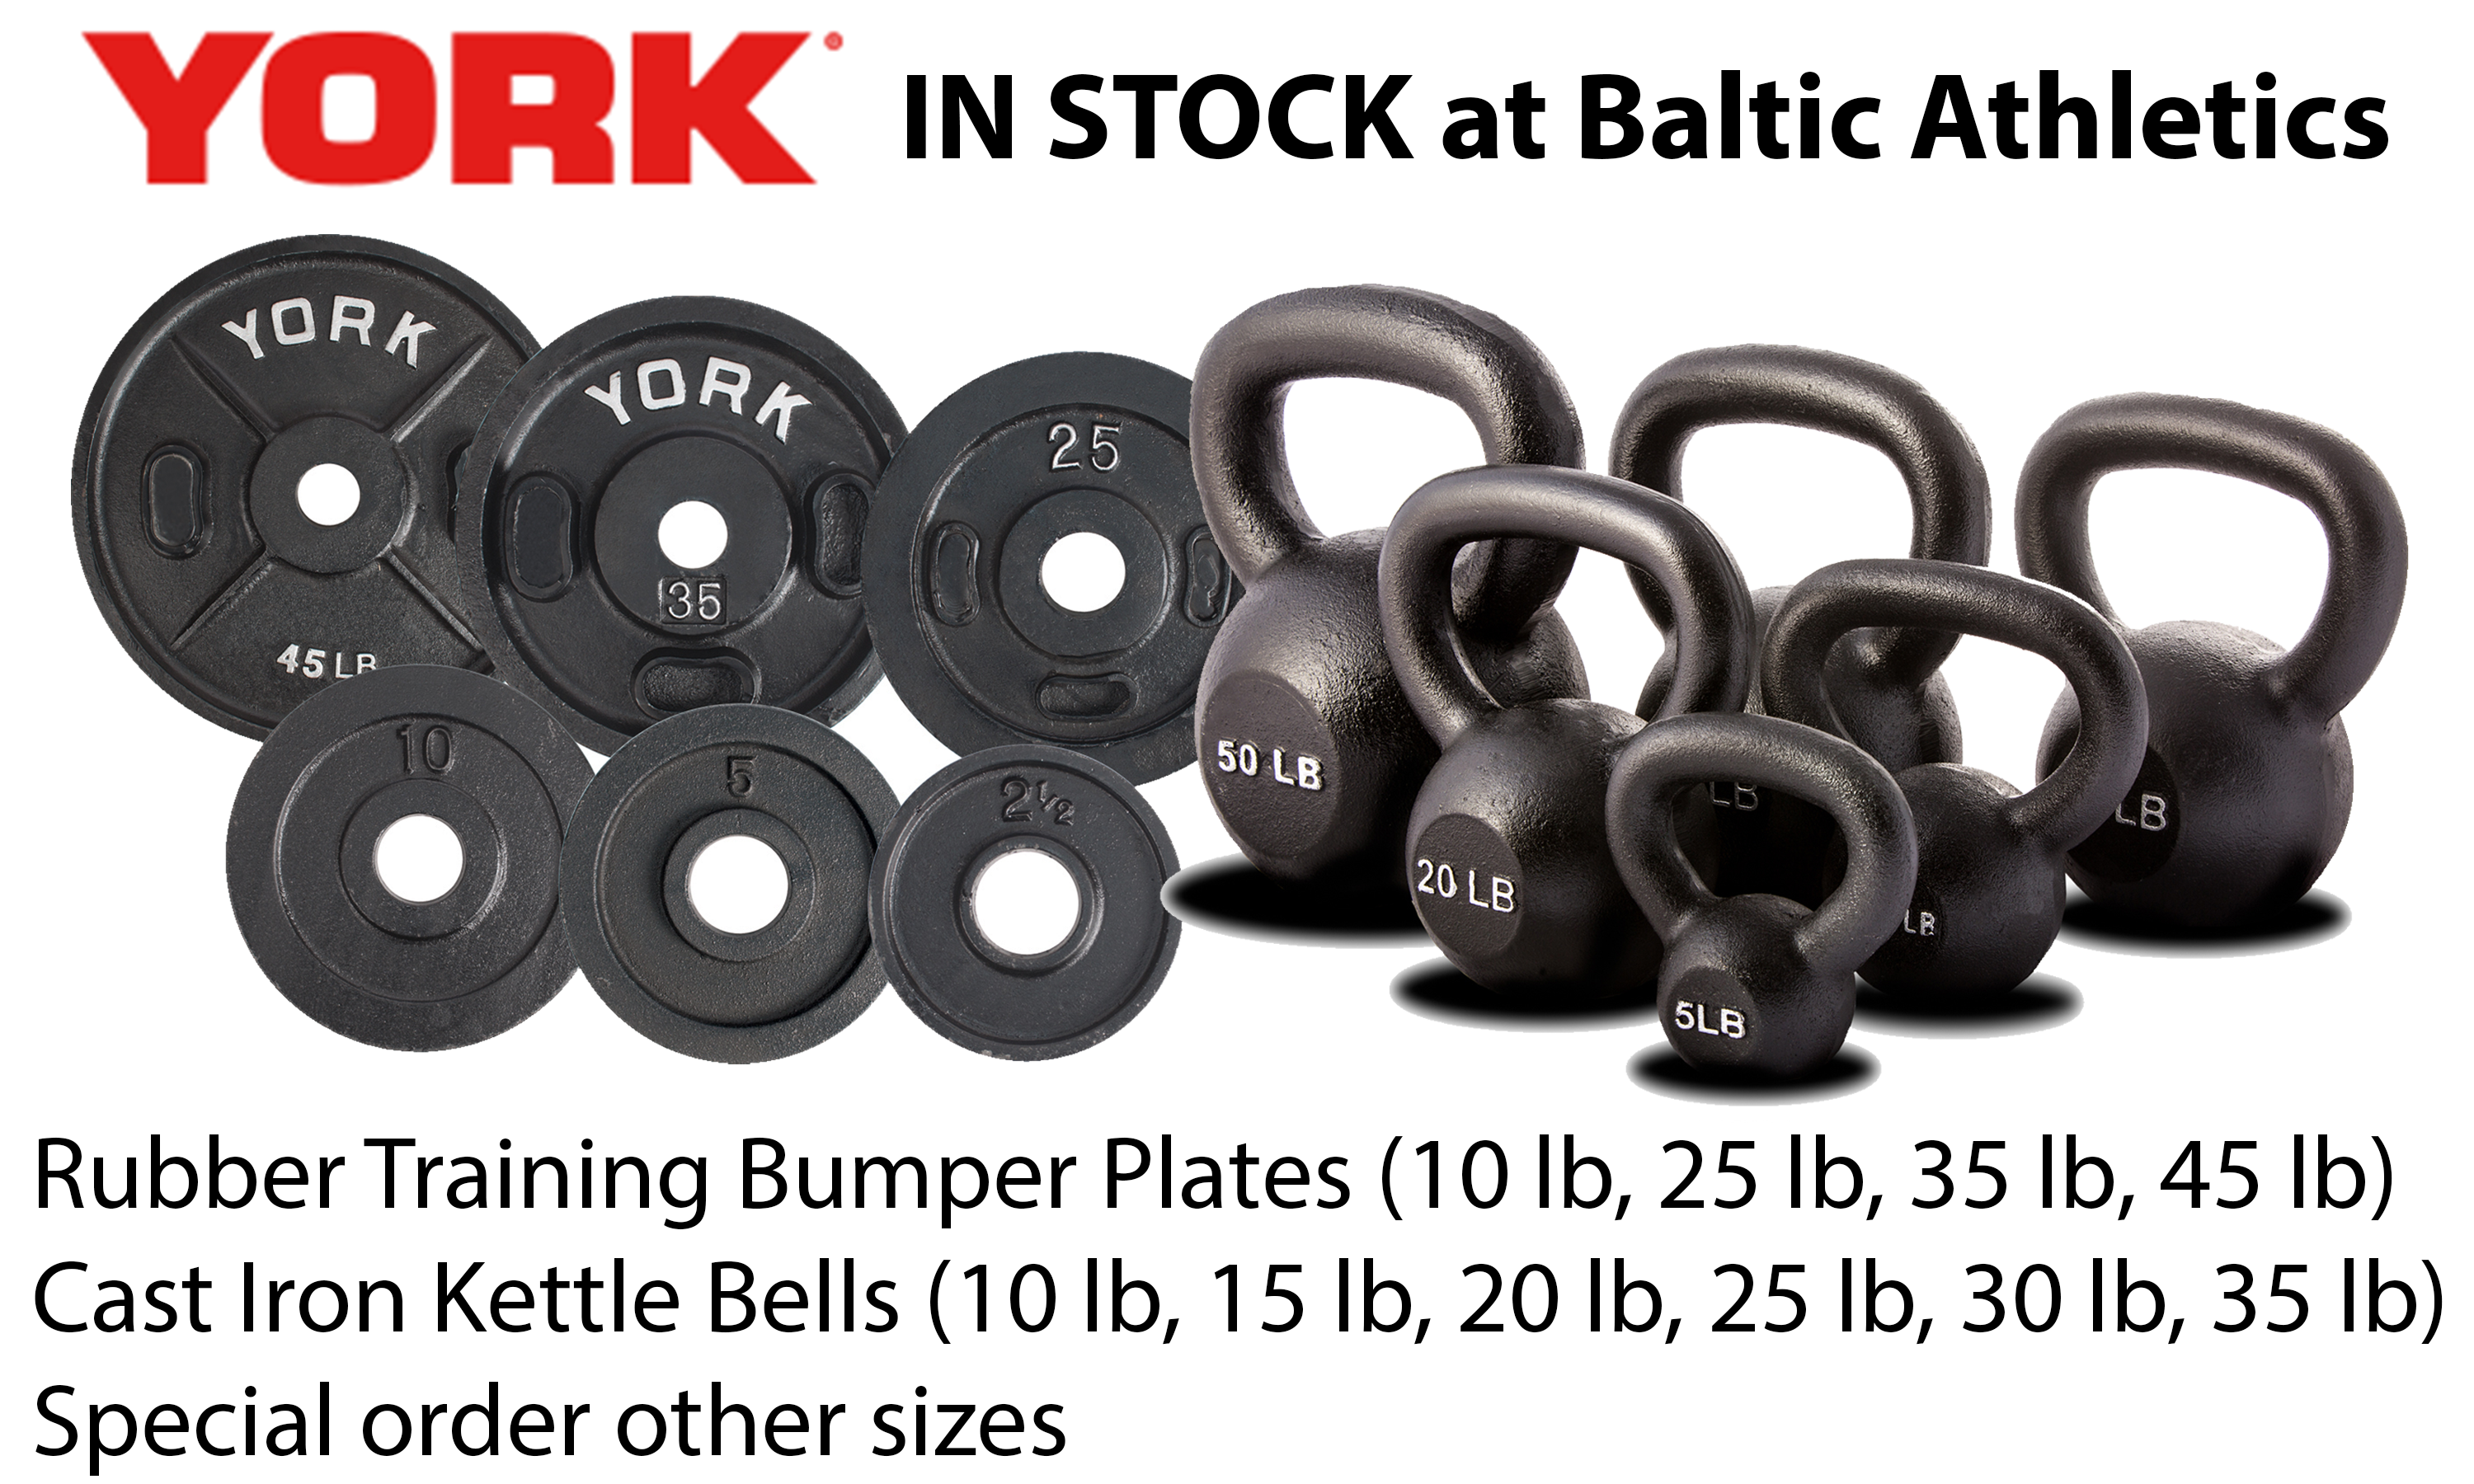 Looking for Bumper Plates and Kettlebells?